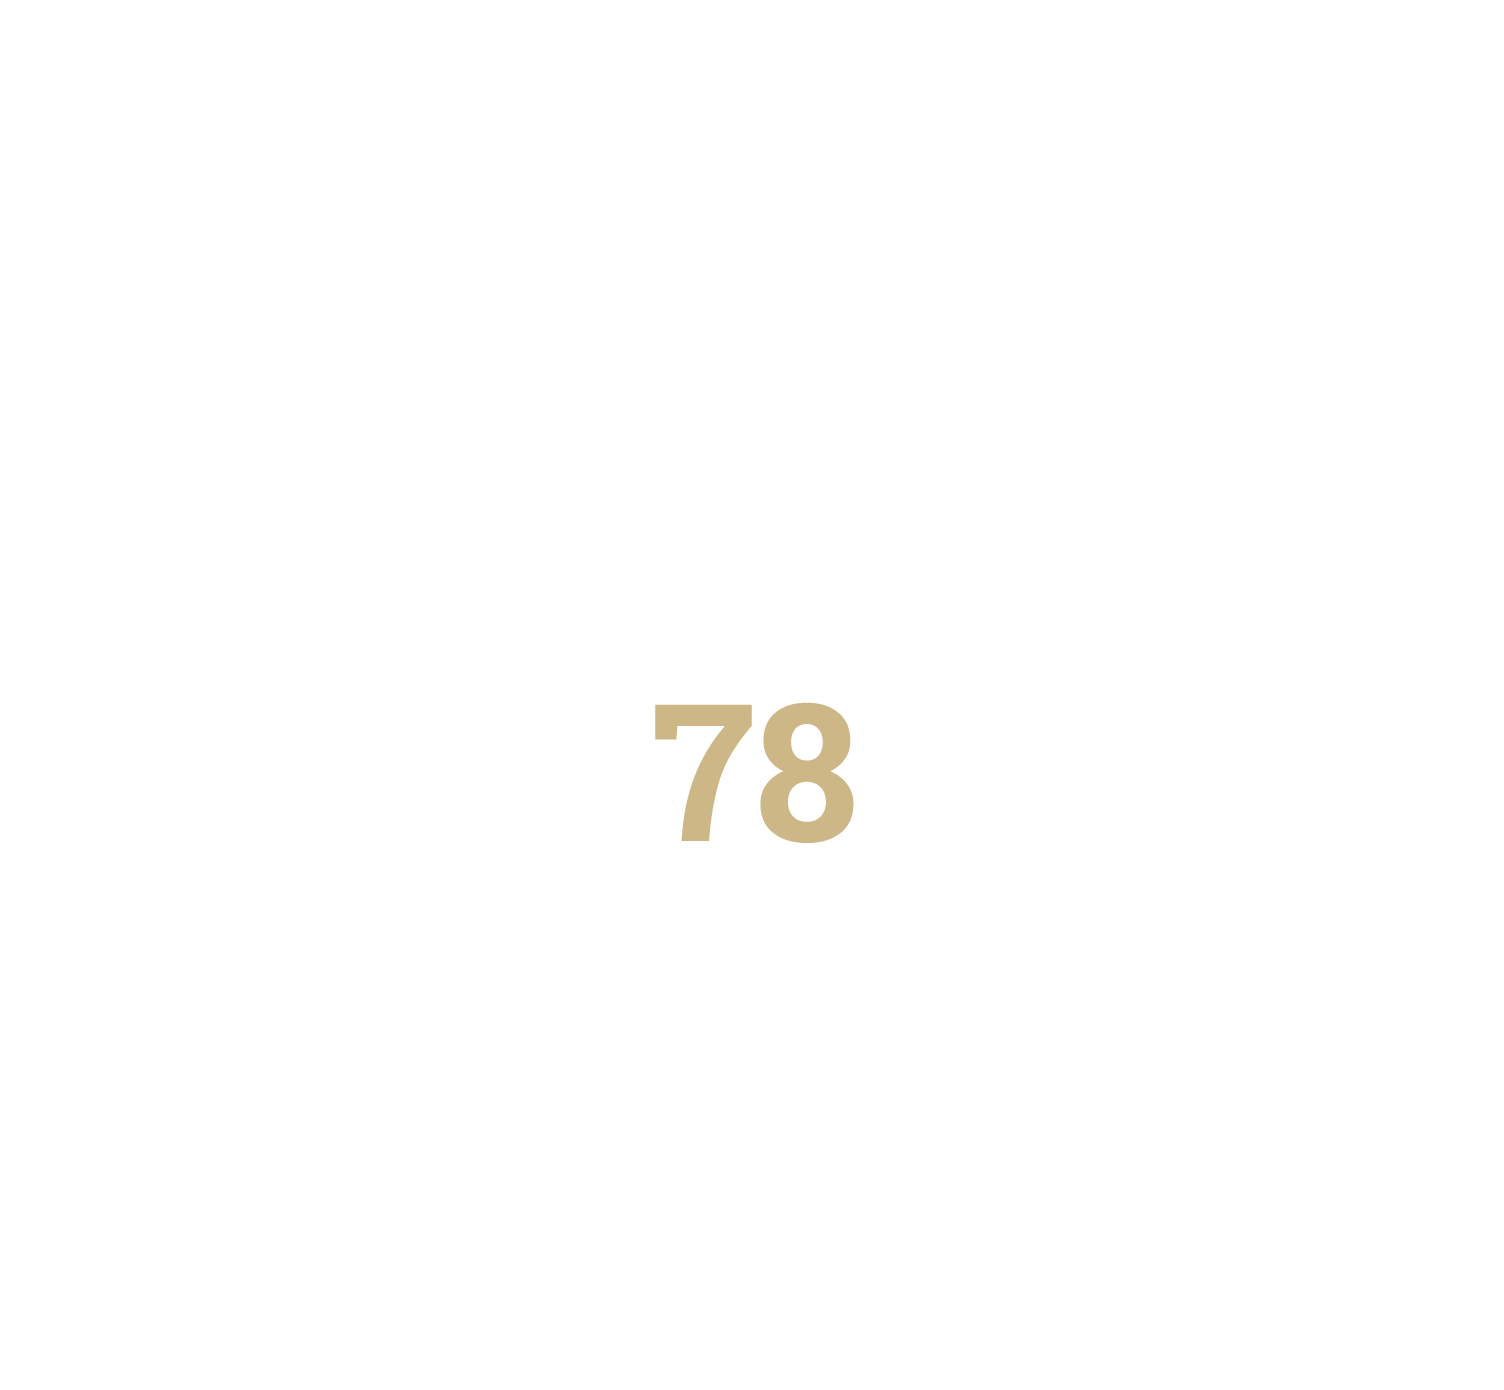 infographic of total new funds